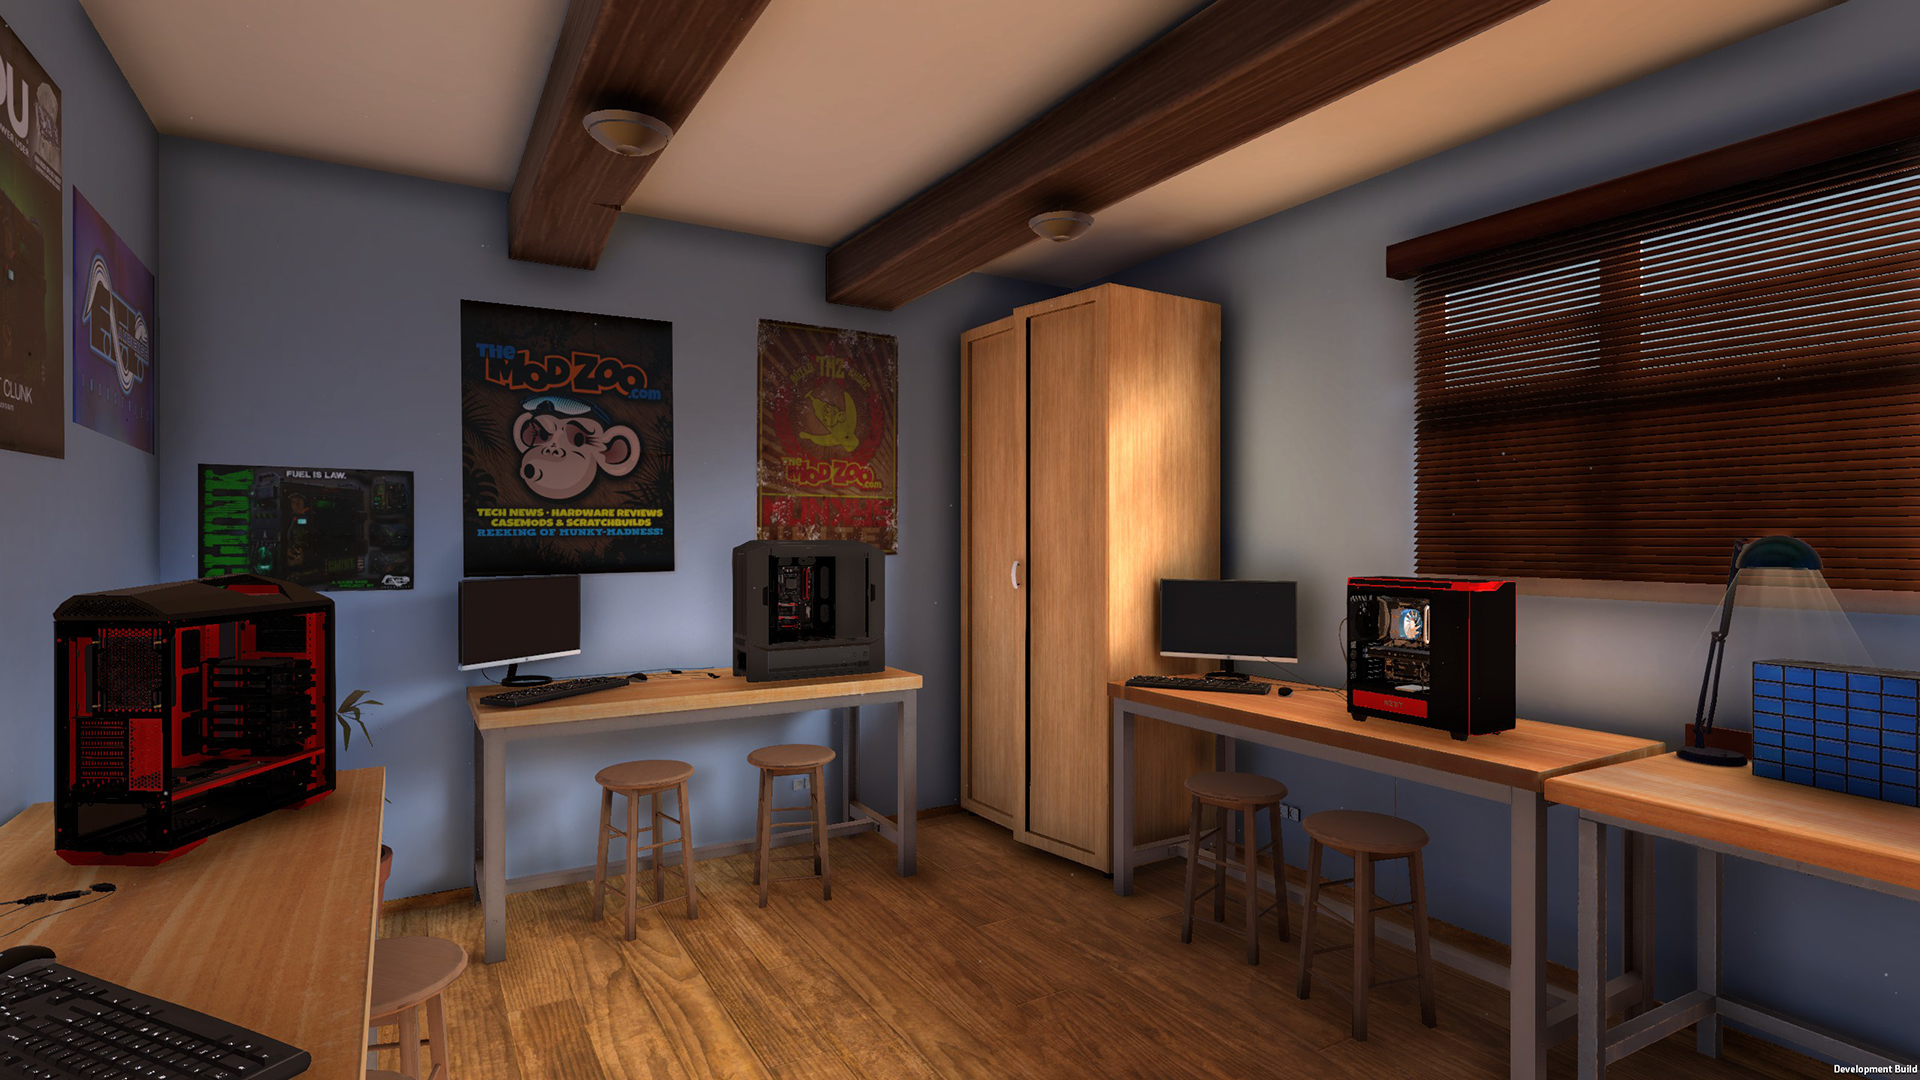 Pc building simulator t r p m y t nh download free for Room design simulator free online